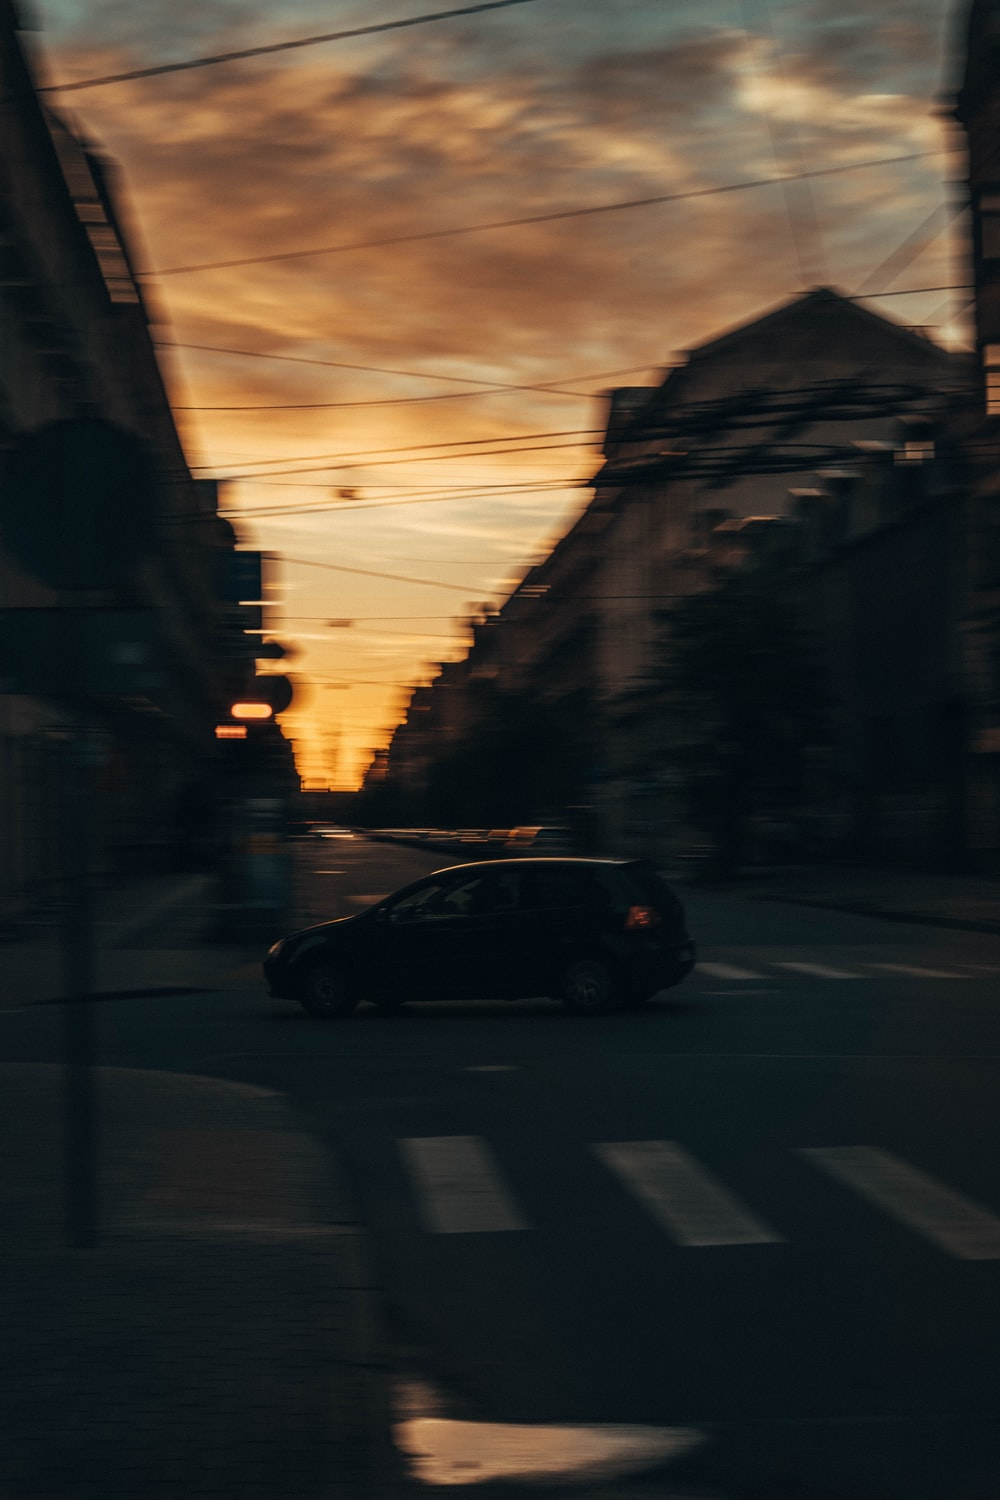 black car on road during sunset